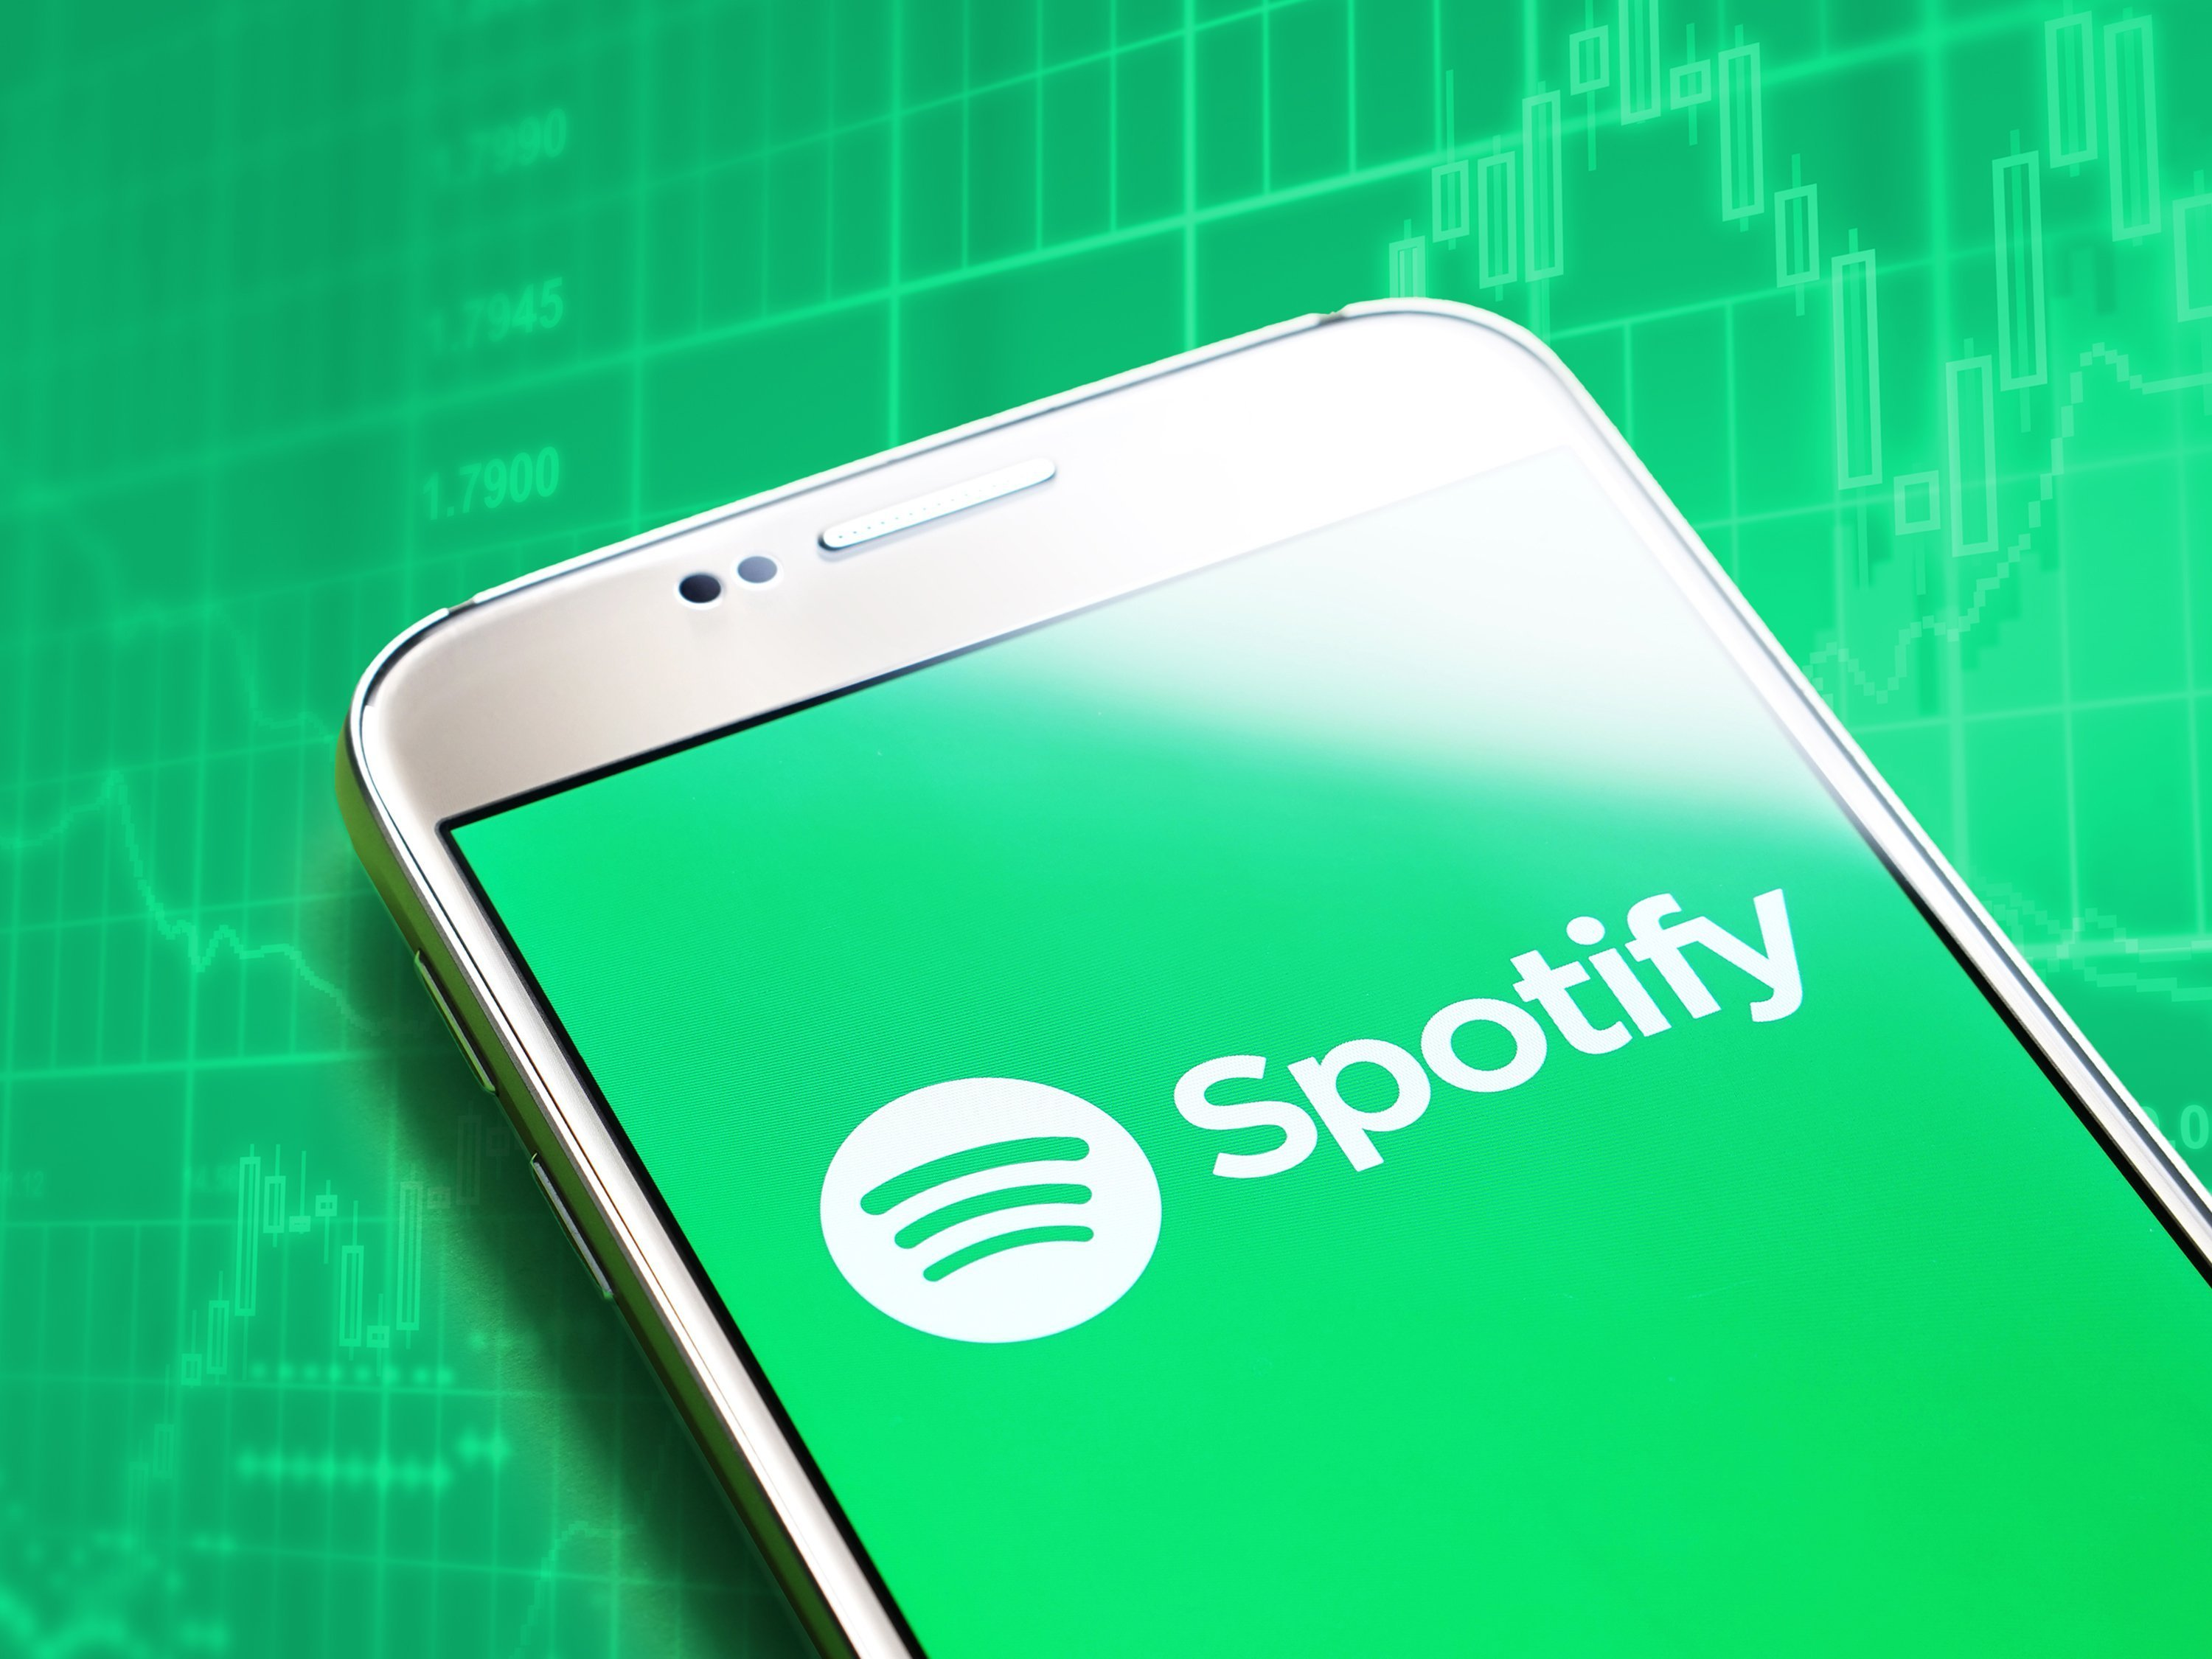 Spotify's Stock Market Debut Strikes a Chord With Investors